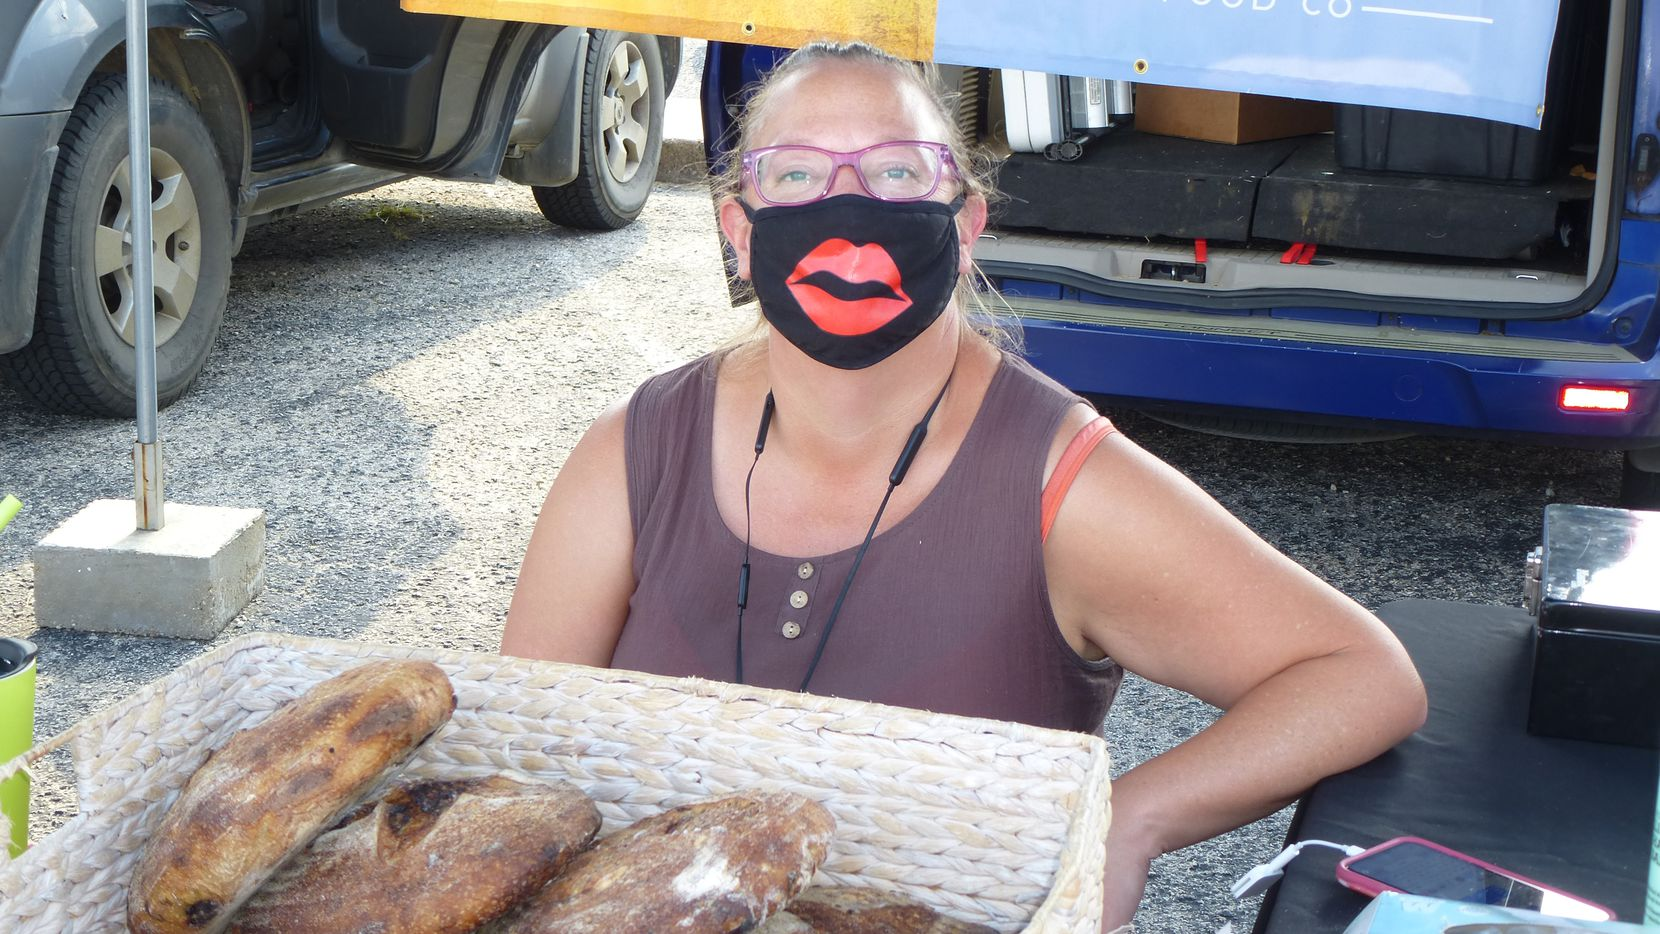 How about that kisser on Dana Shasken, who owns Mockingbird Food Co. She's one of many vendors finding ways to lighten the mood during COVID times at Cowtown Farmers Market in Fort Worth.